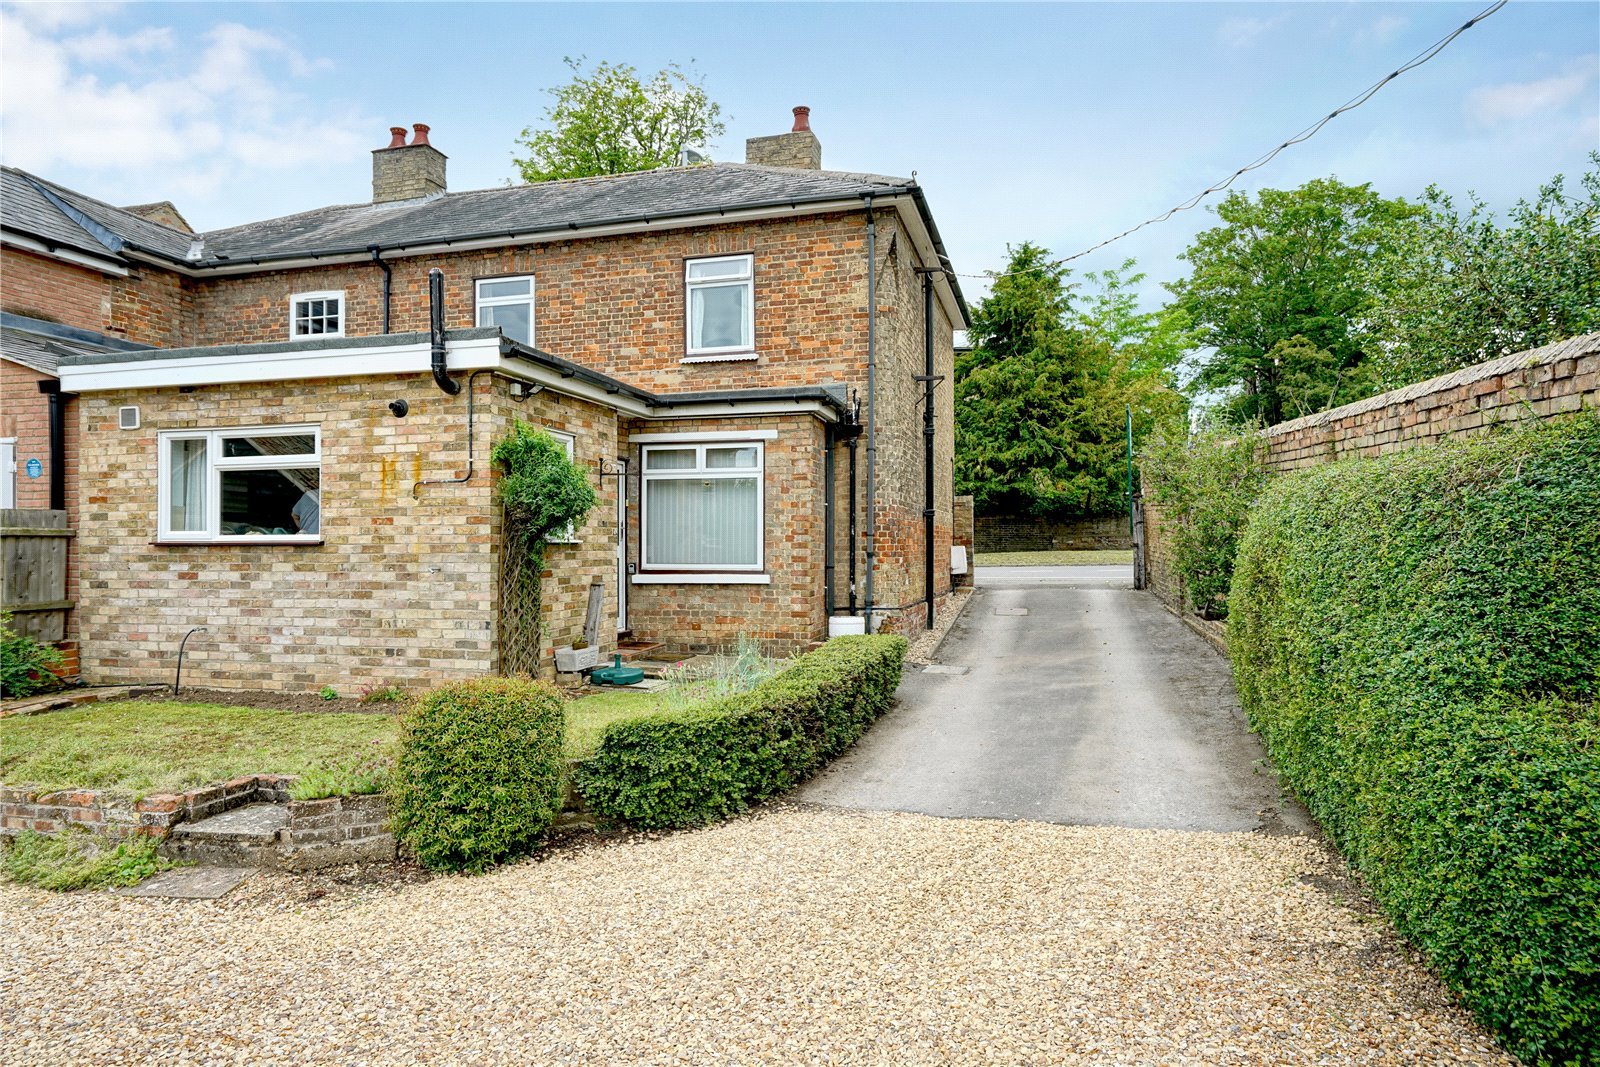 3 bed house for sale in Great North Road, Eaton Socon 5